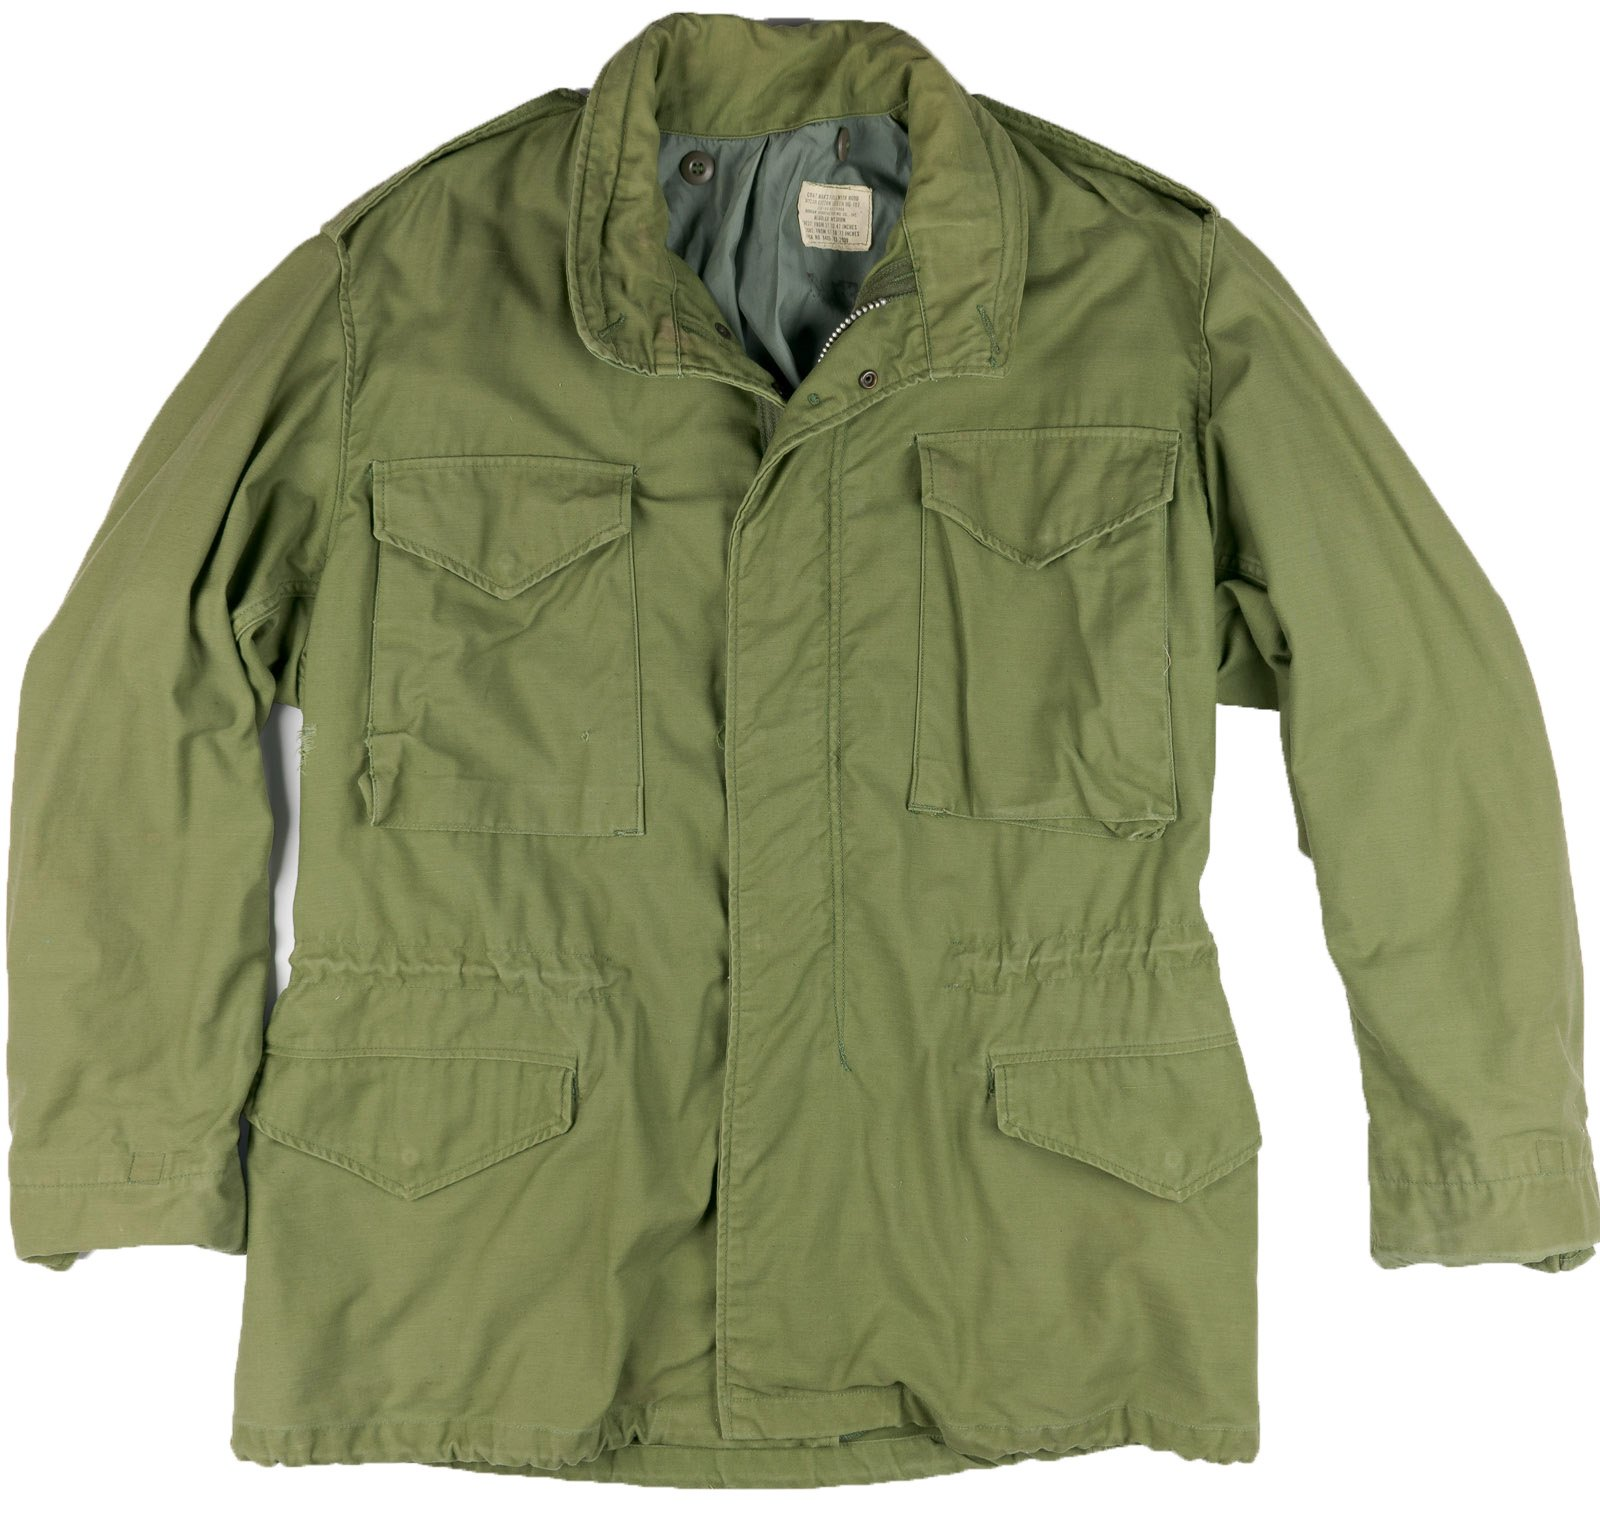 1968 Men's Field Jacket Medium M65 Vintage Vietnam Era